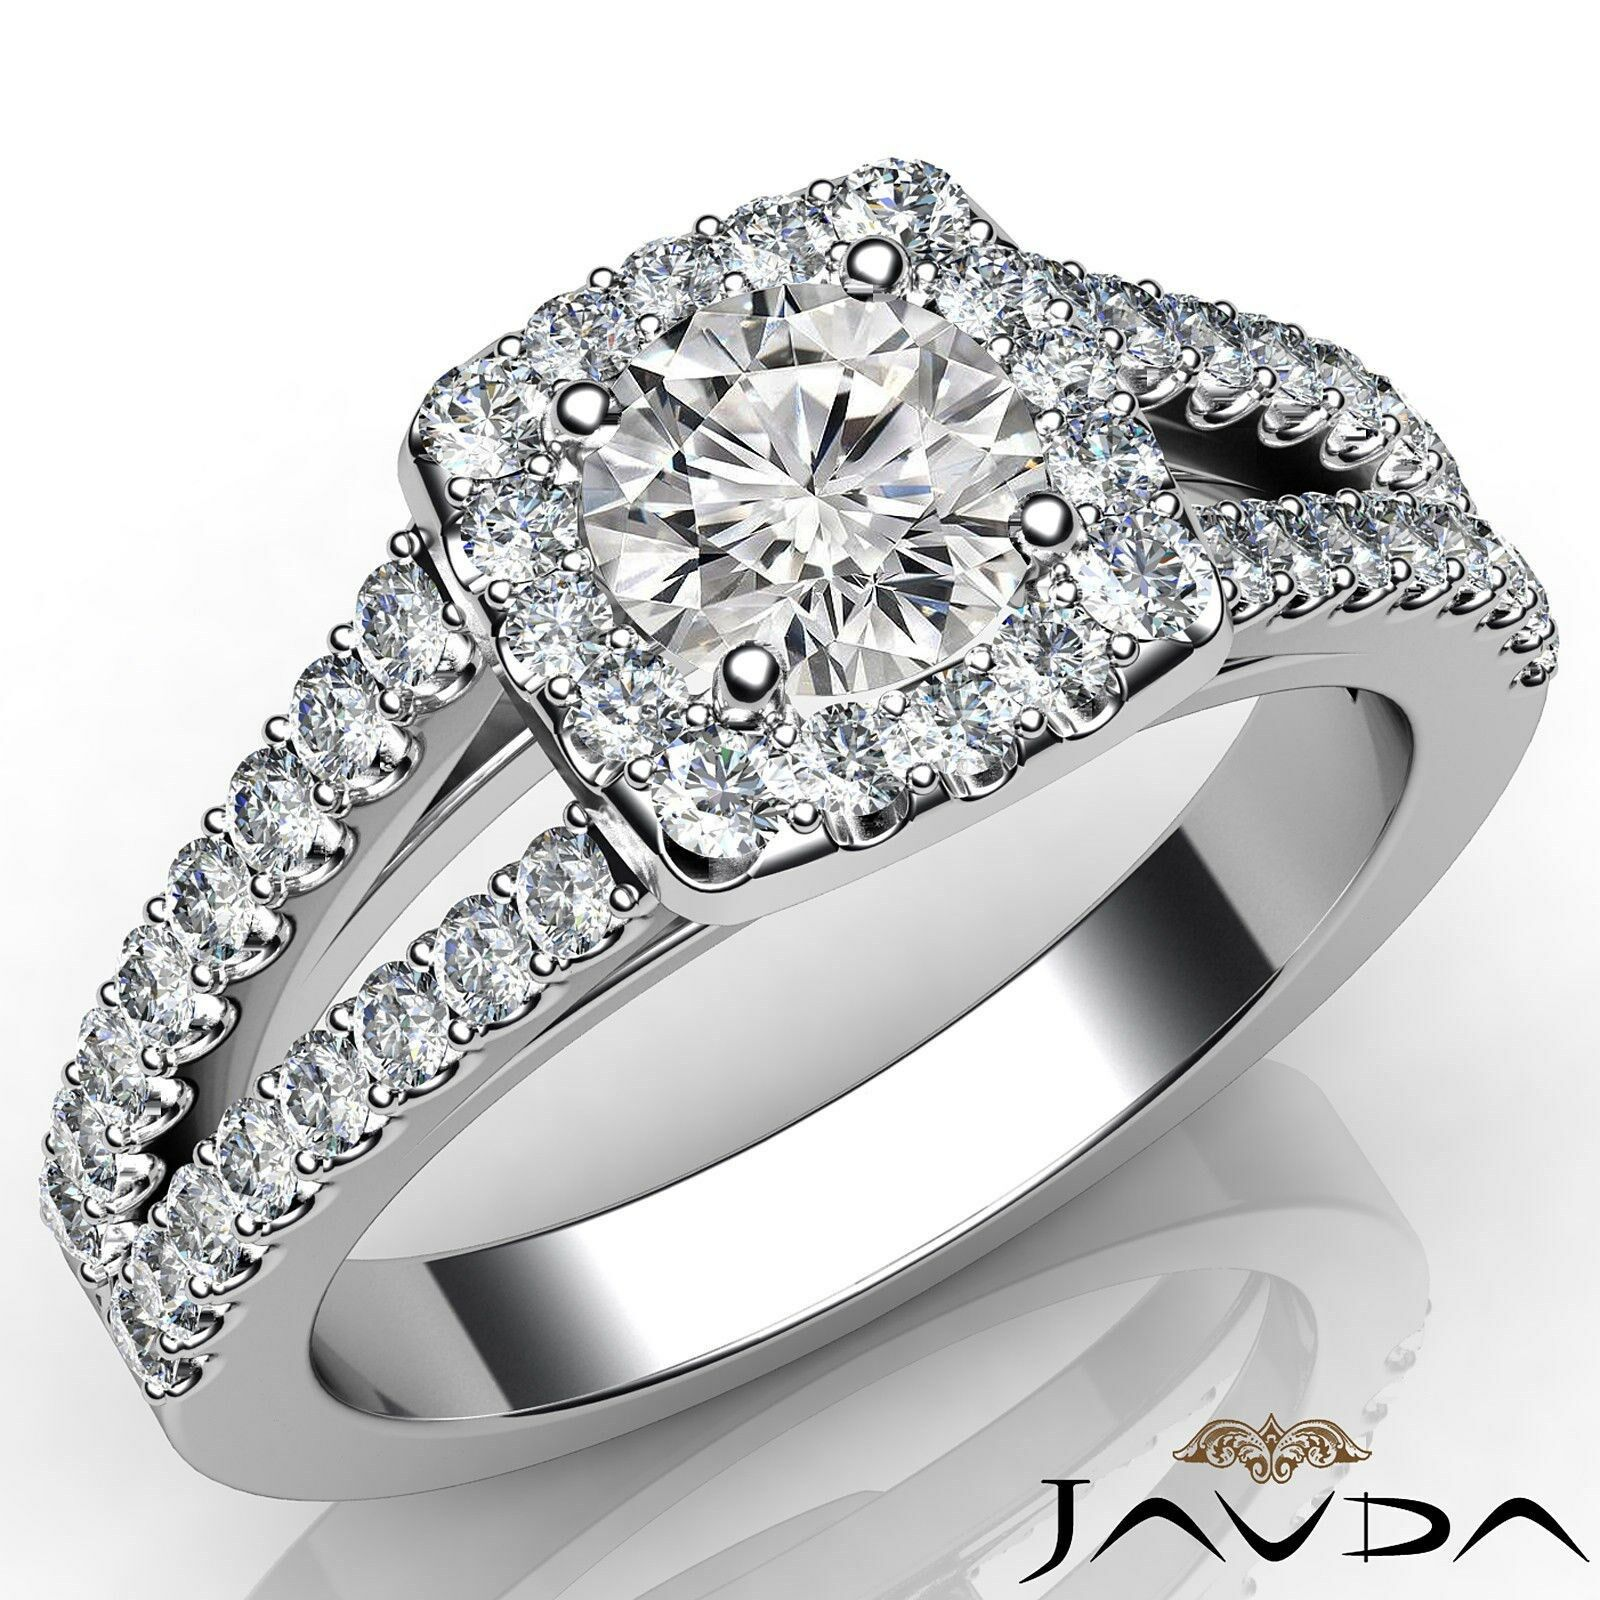 100% Natural Round Cut Diamond Engagement Ring GIA D SI1 18k White Gold 1 1/4ctw